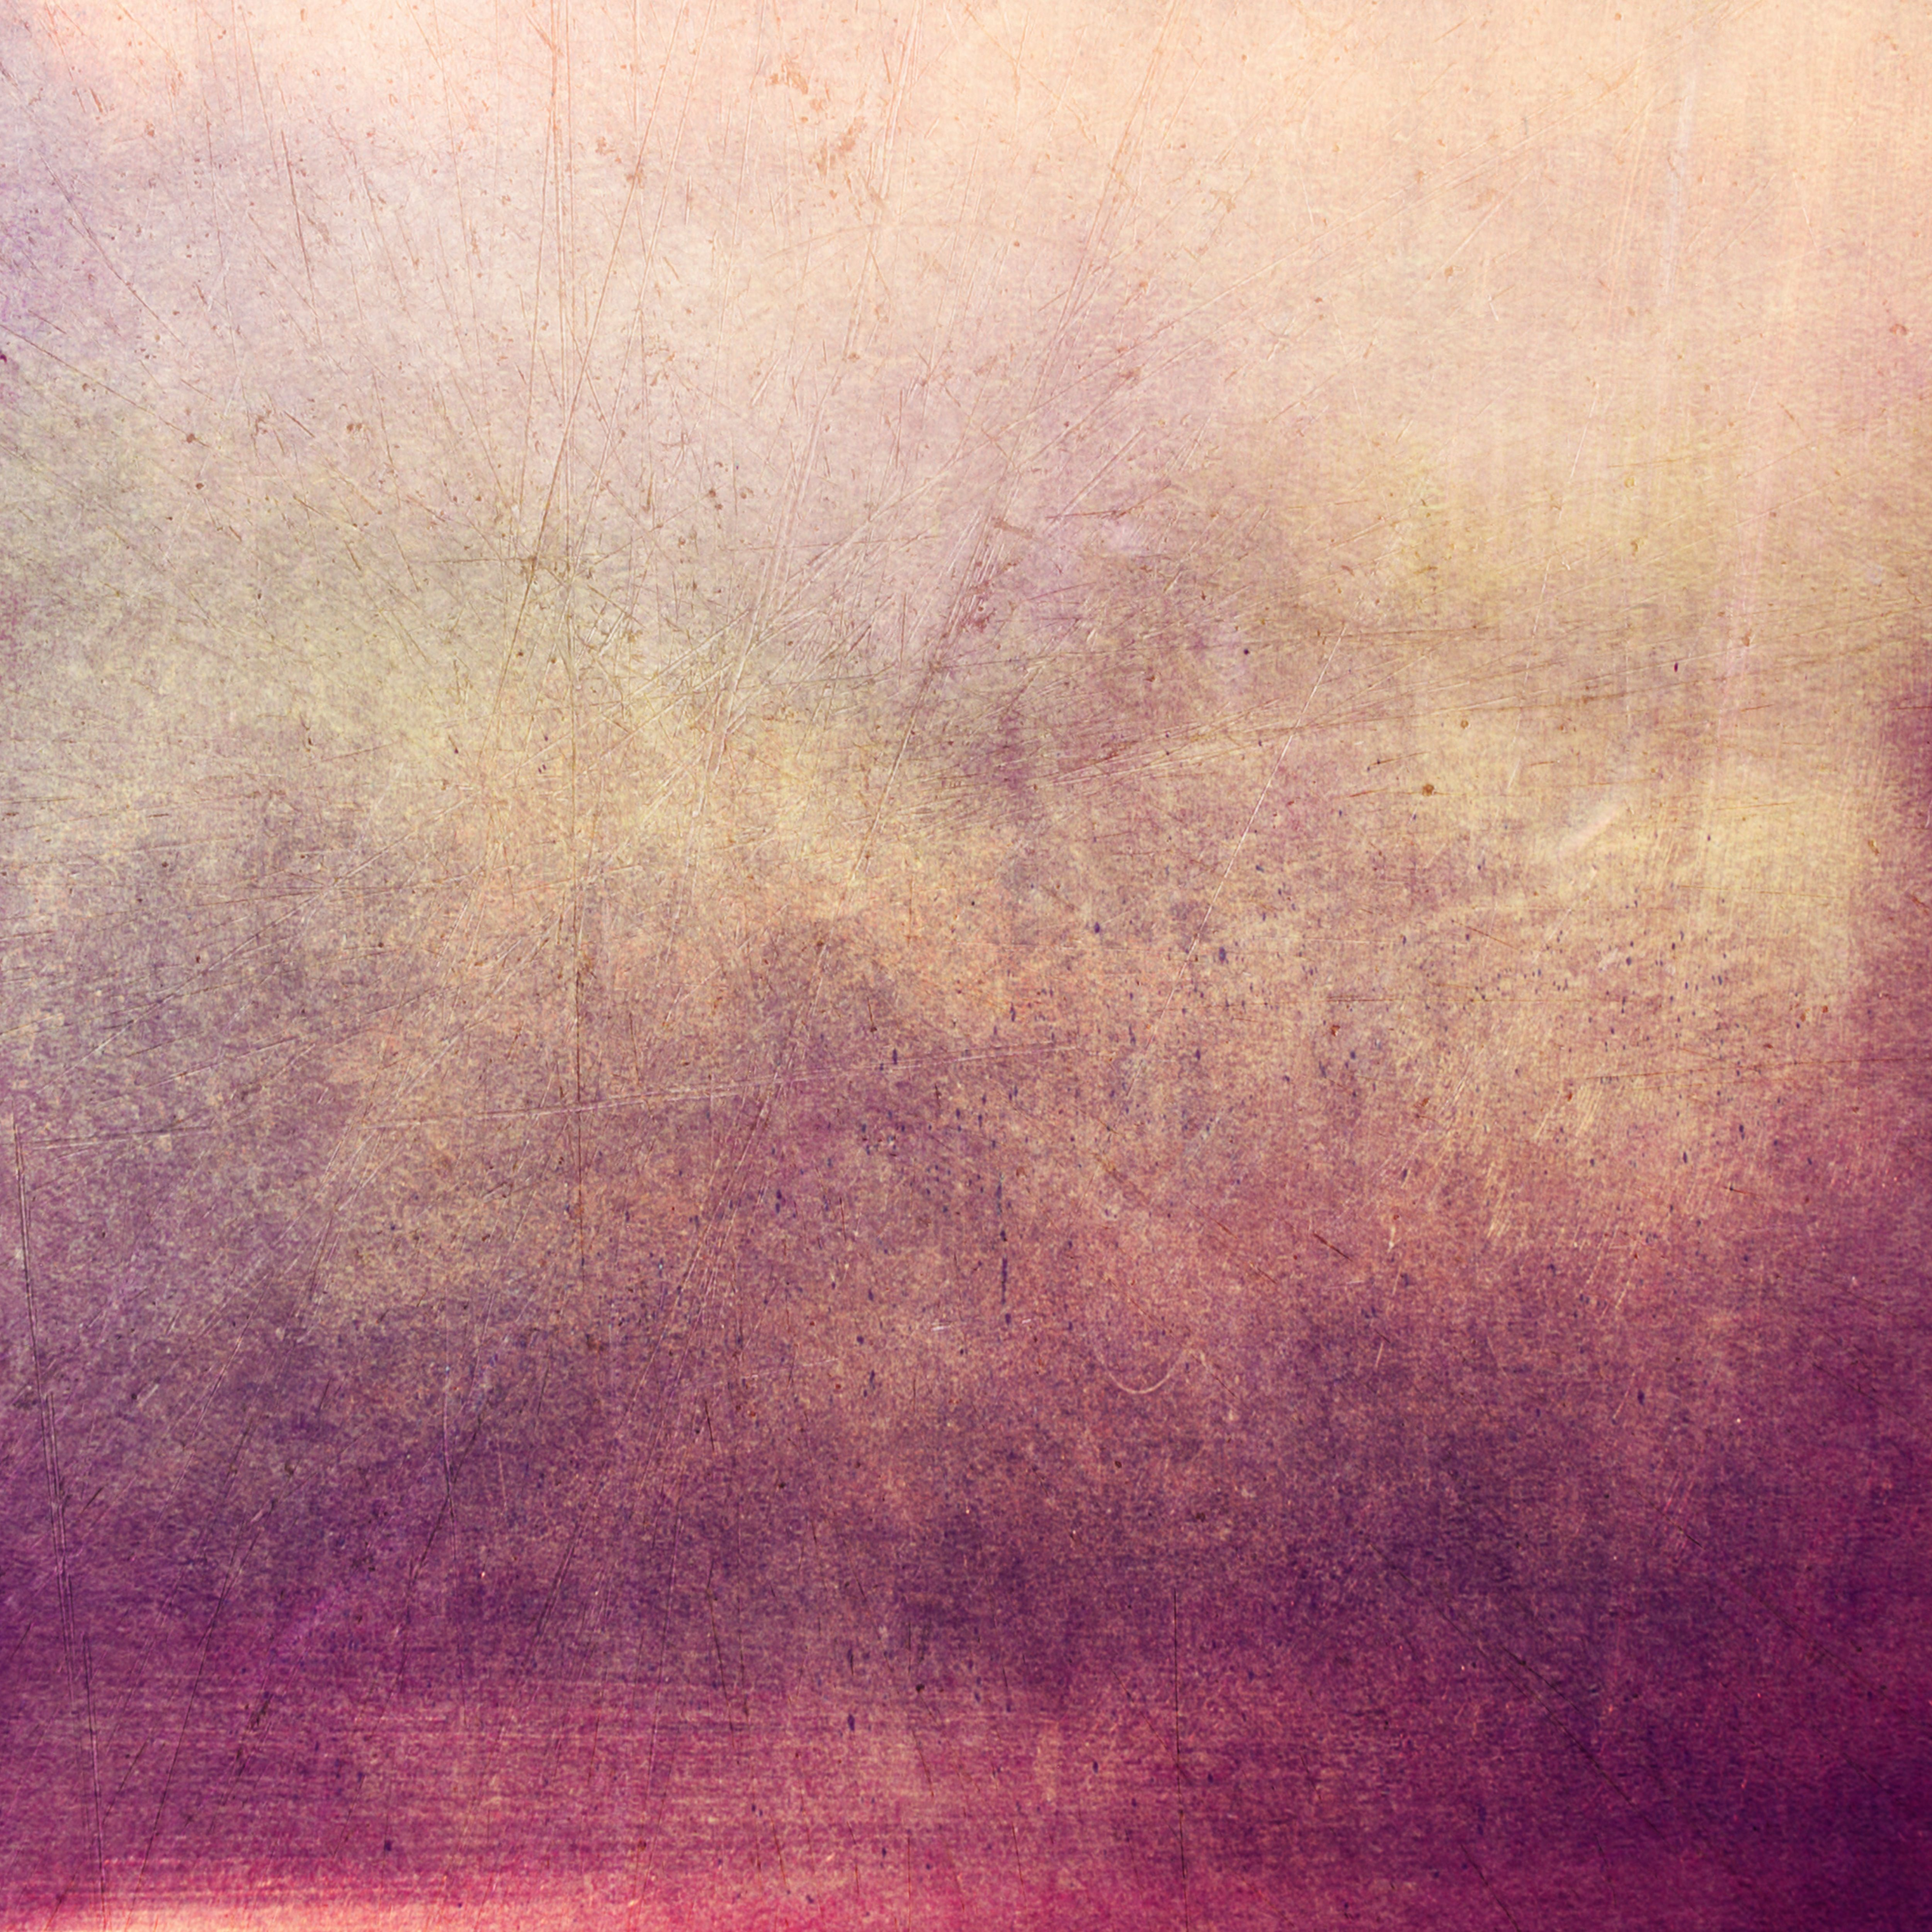 Grunge Watercolor Background Background for photography